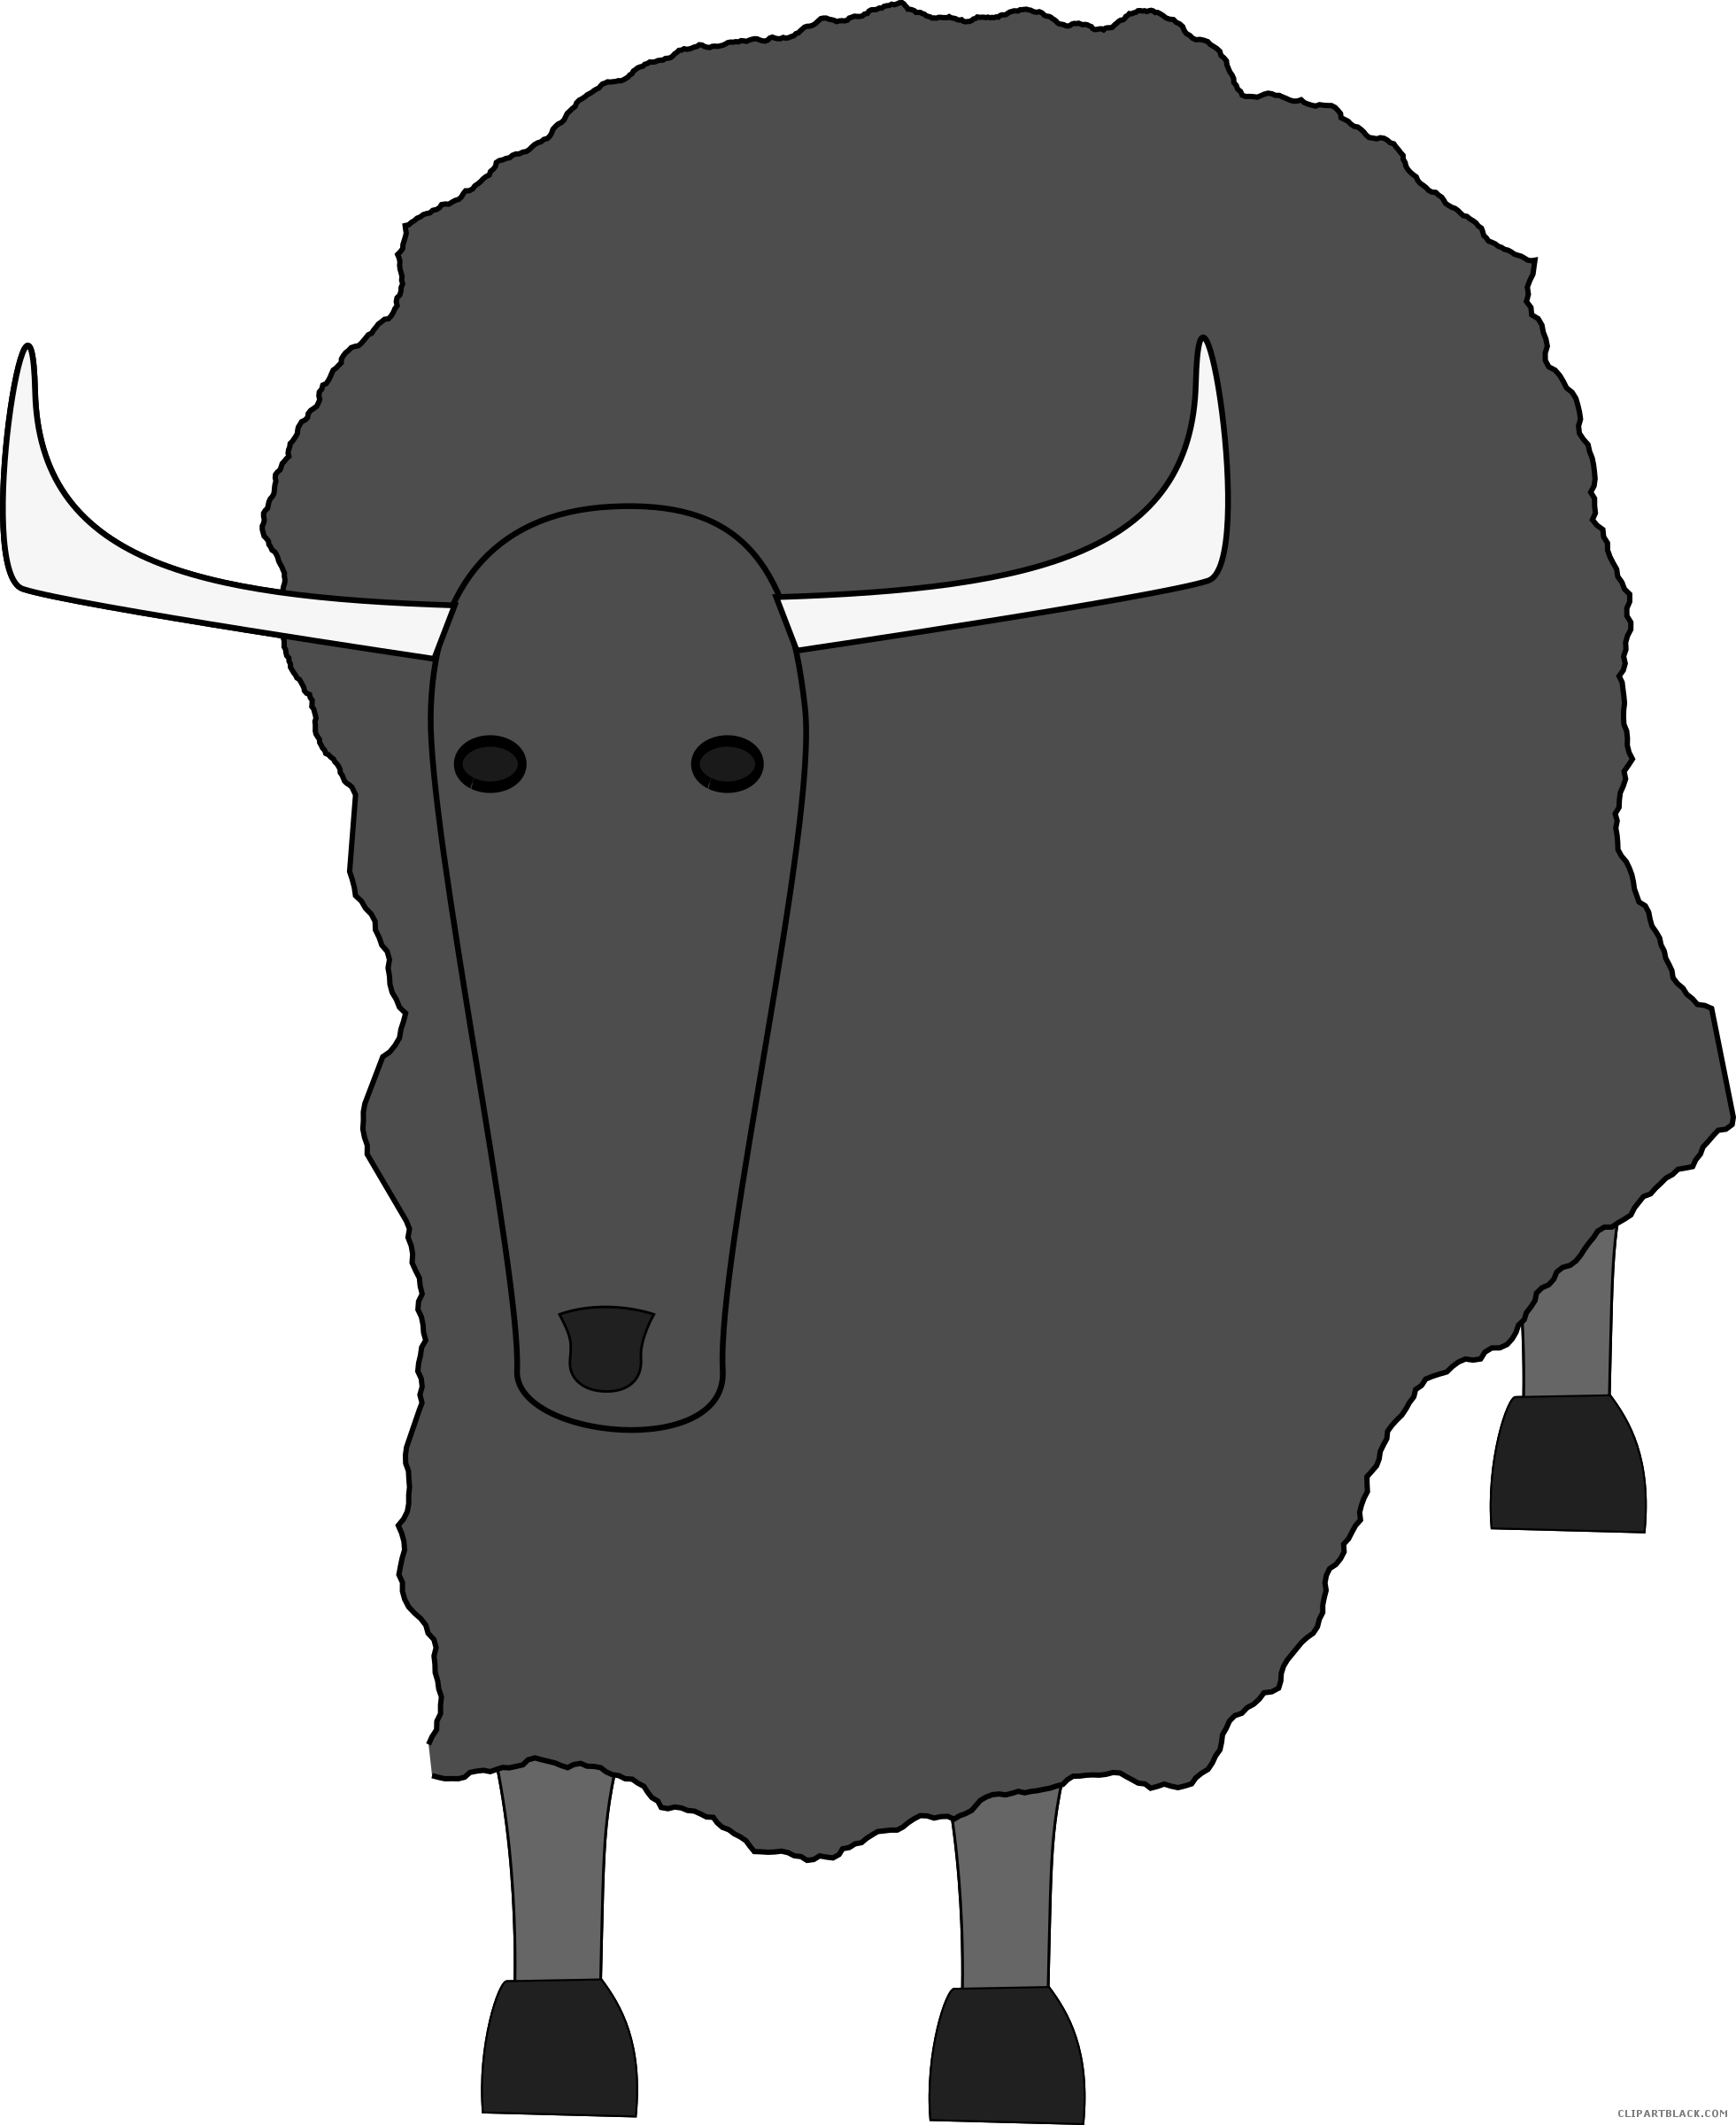 Yak clipart black and white. Page of clipartblack com